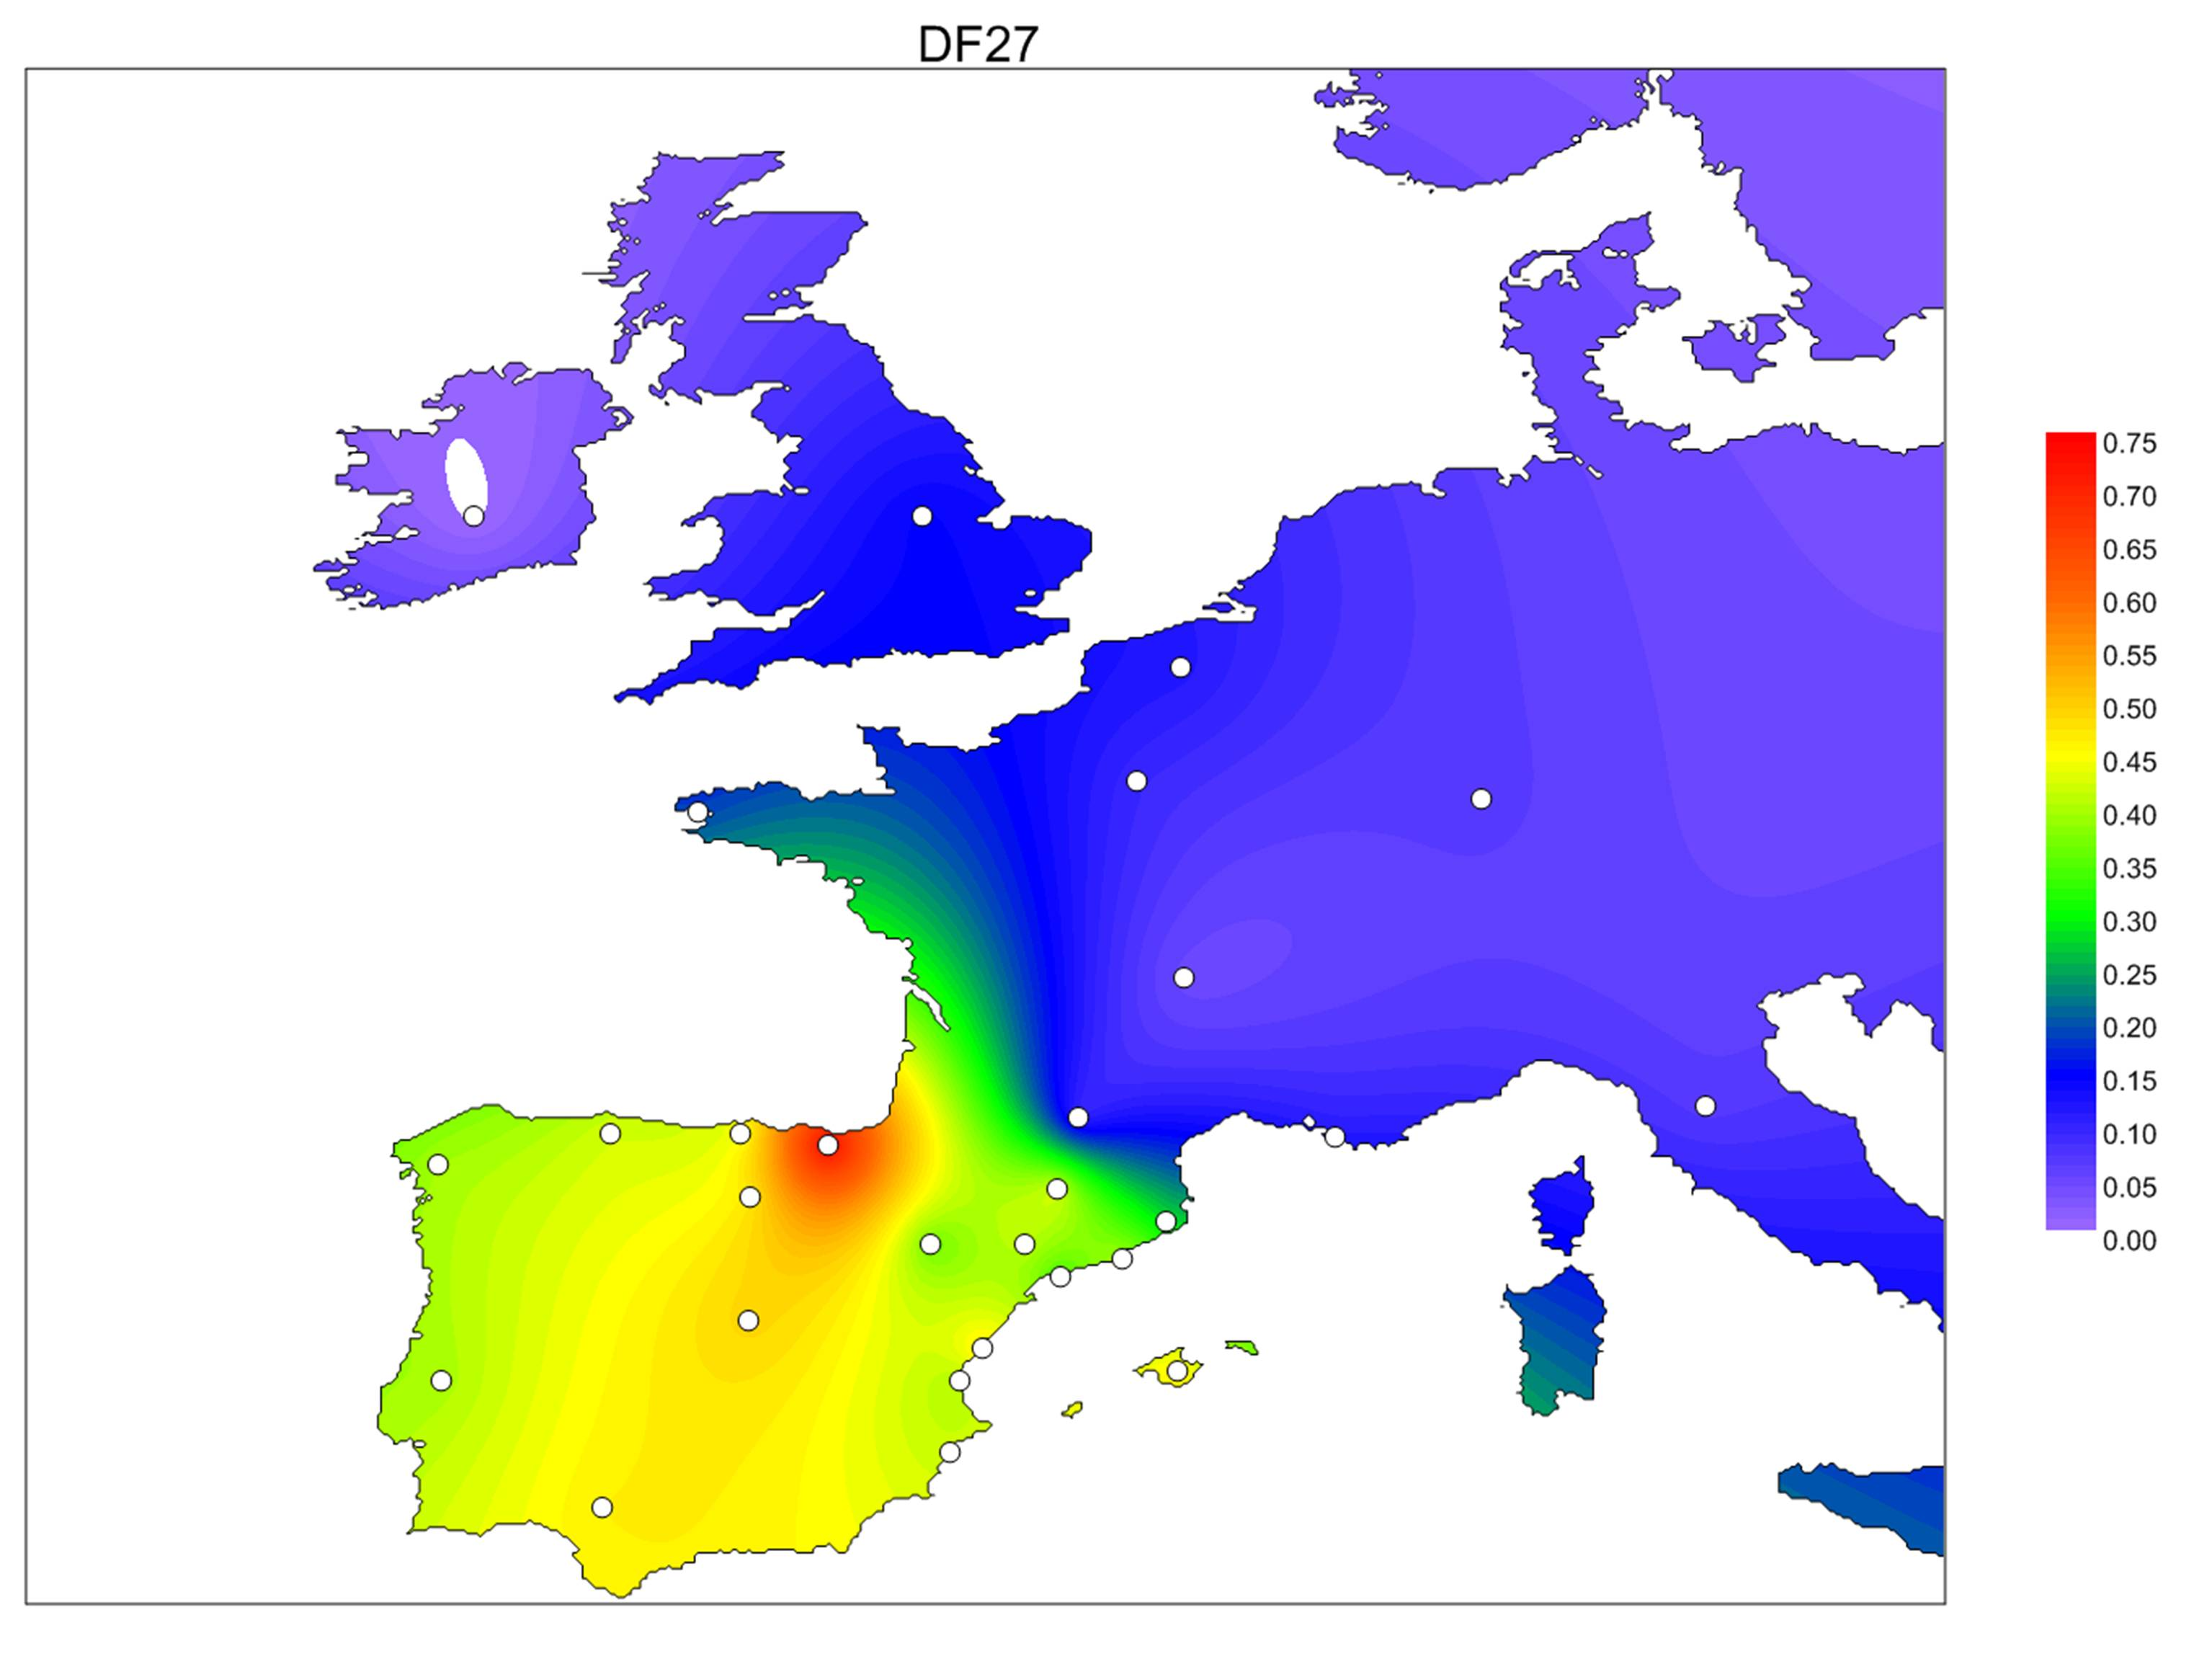 OS] Y-DNA haplogroup R1b-DF27 distribution all across